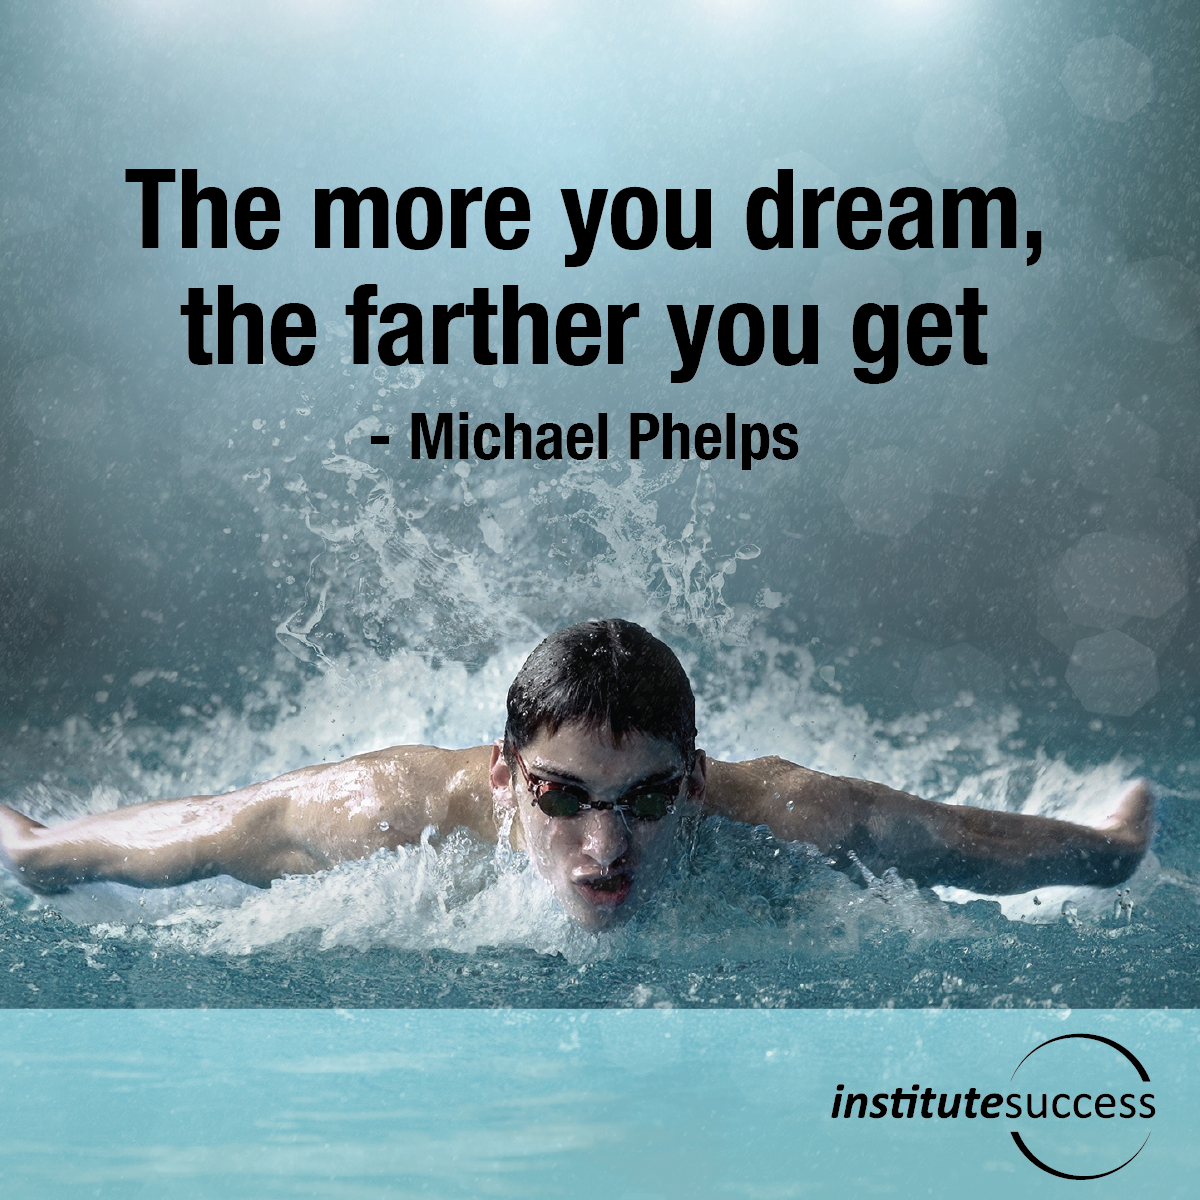 The more you dream, the farther you get – Michael Phelps